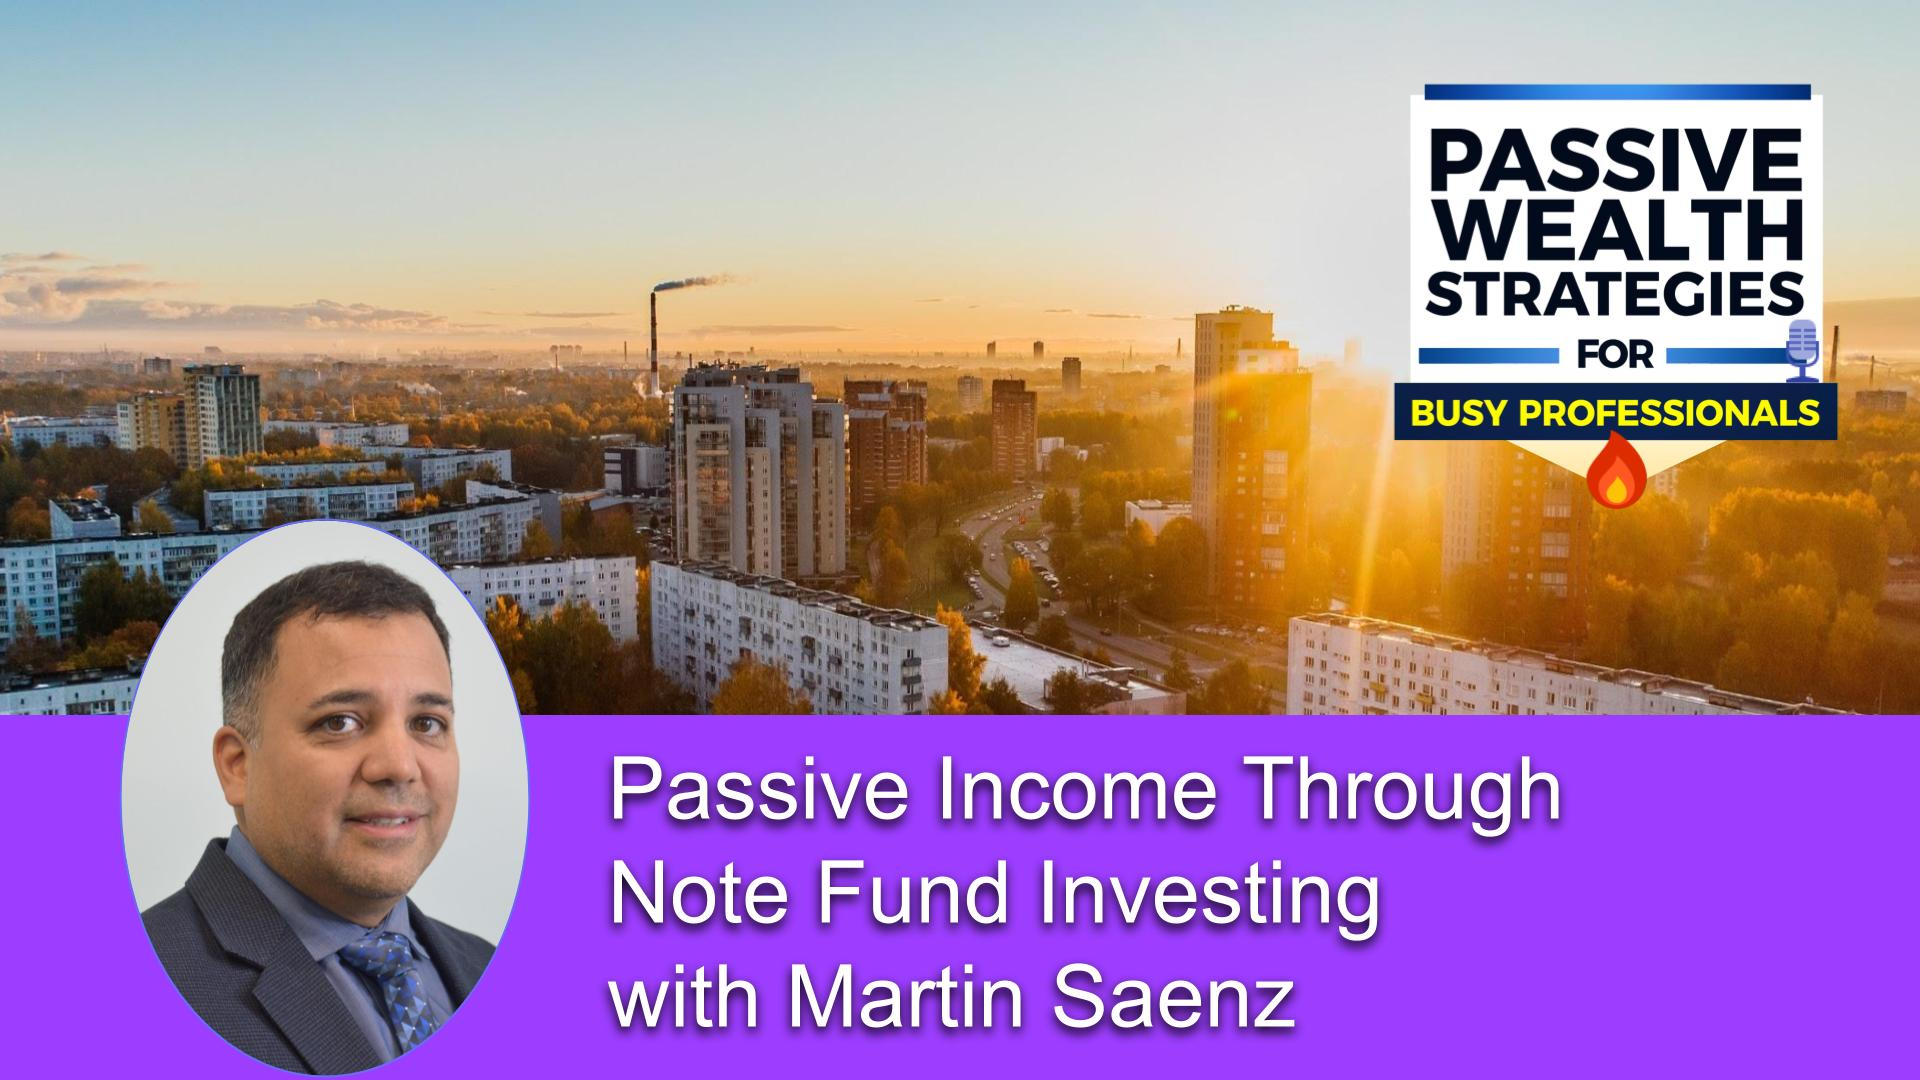 182 Passive Income Through Note Fund Investing with Martin Saenz